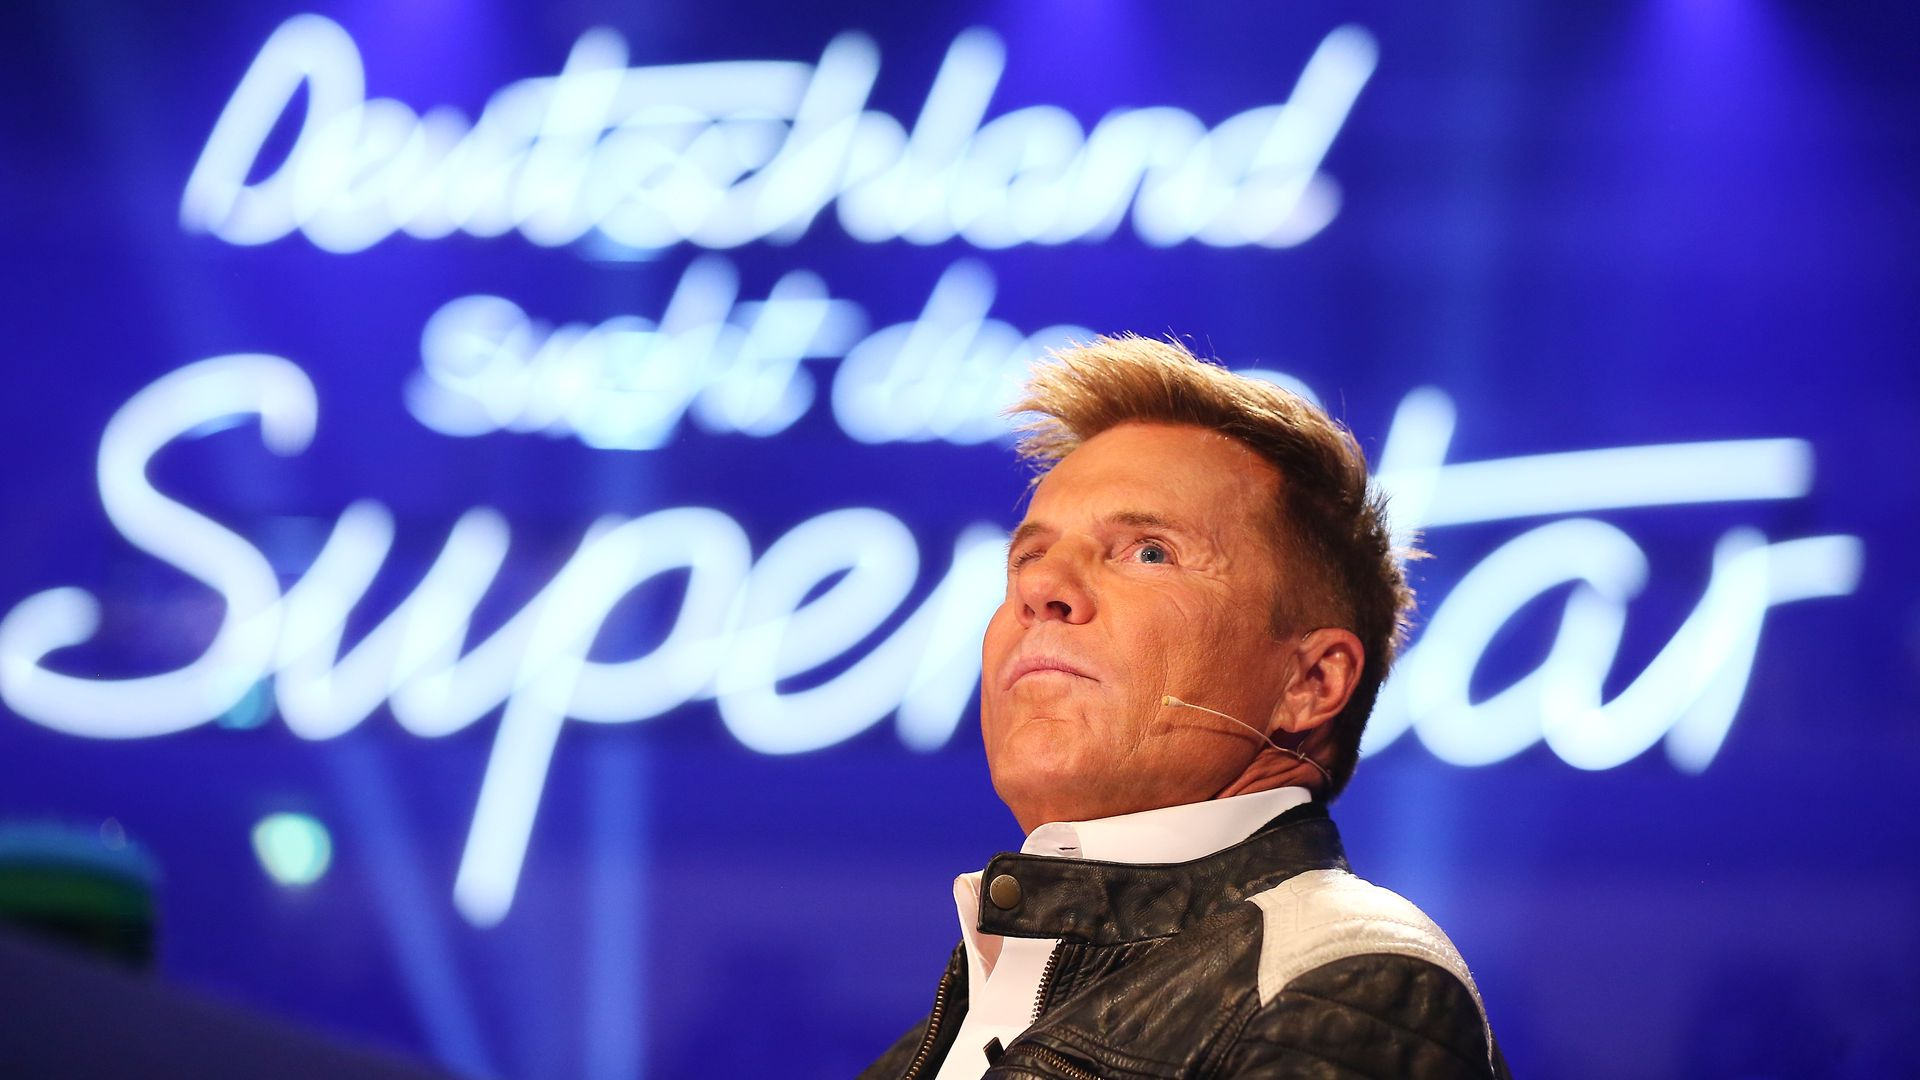 Wollny Bei Dsds